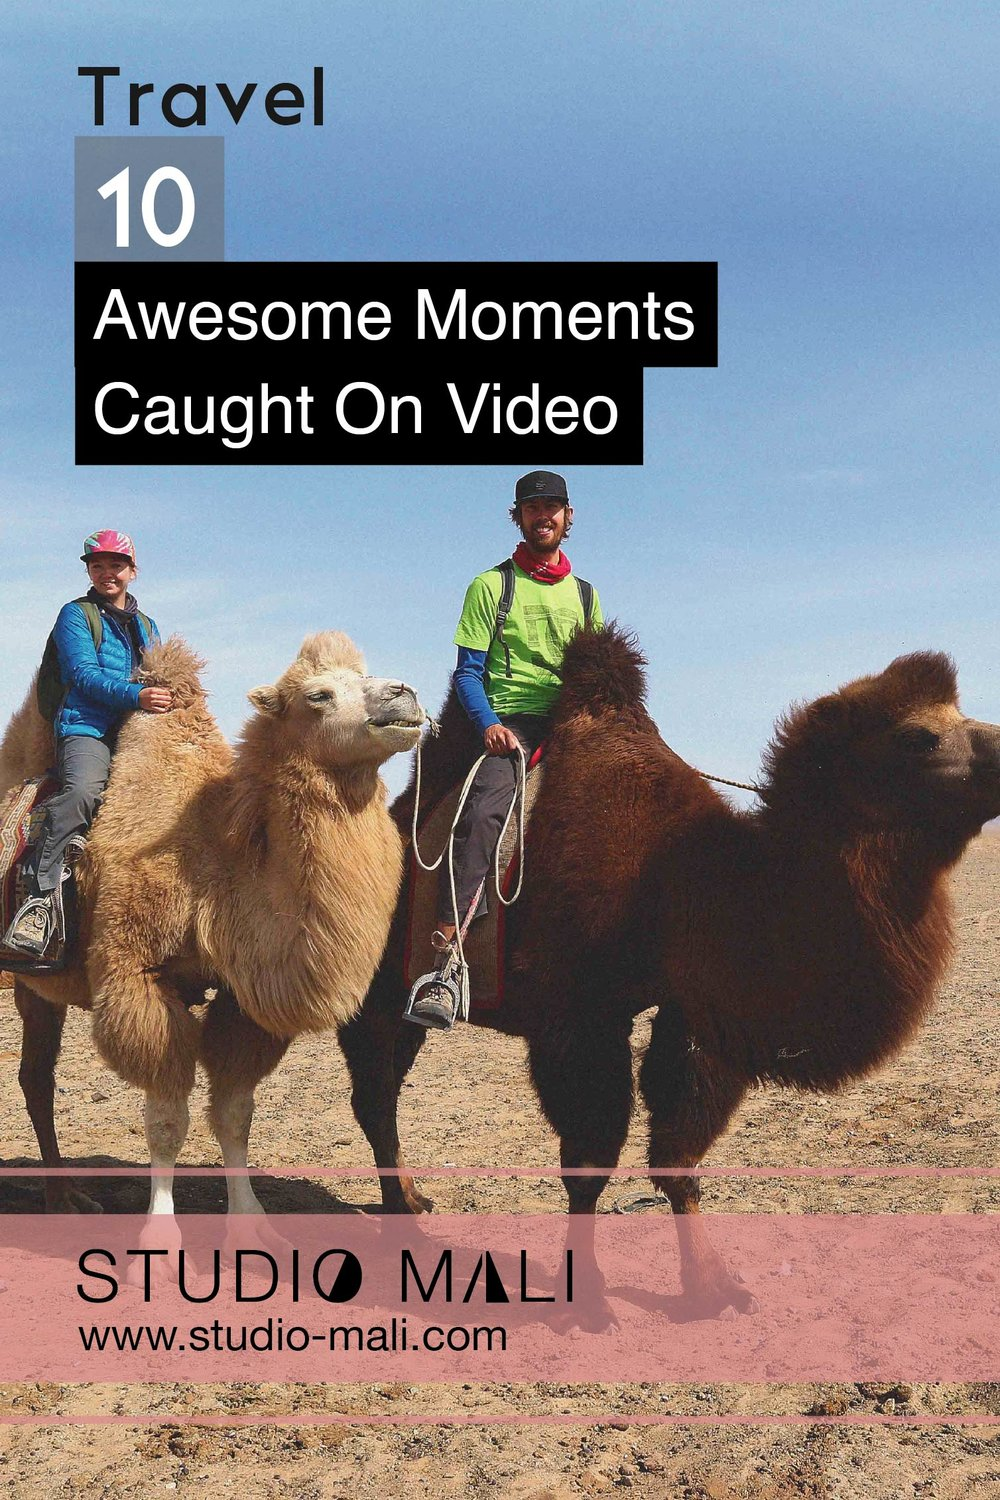 10 Awesome Moments Caught On Video, by Studio Mali